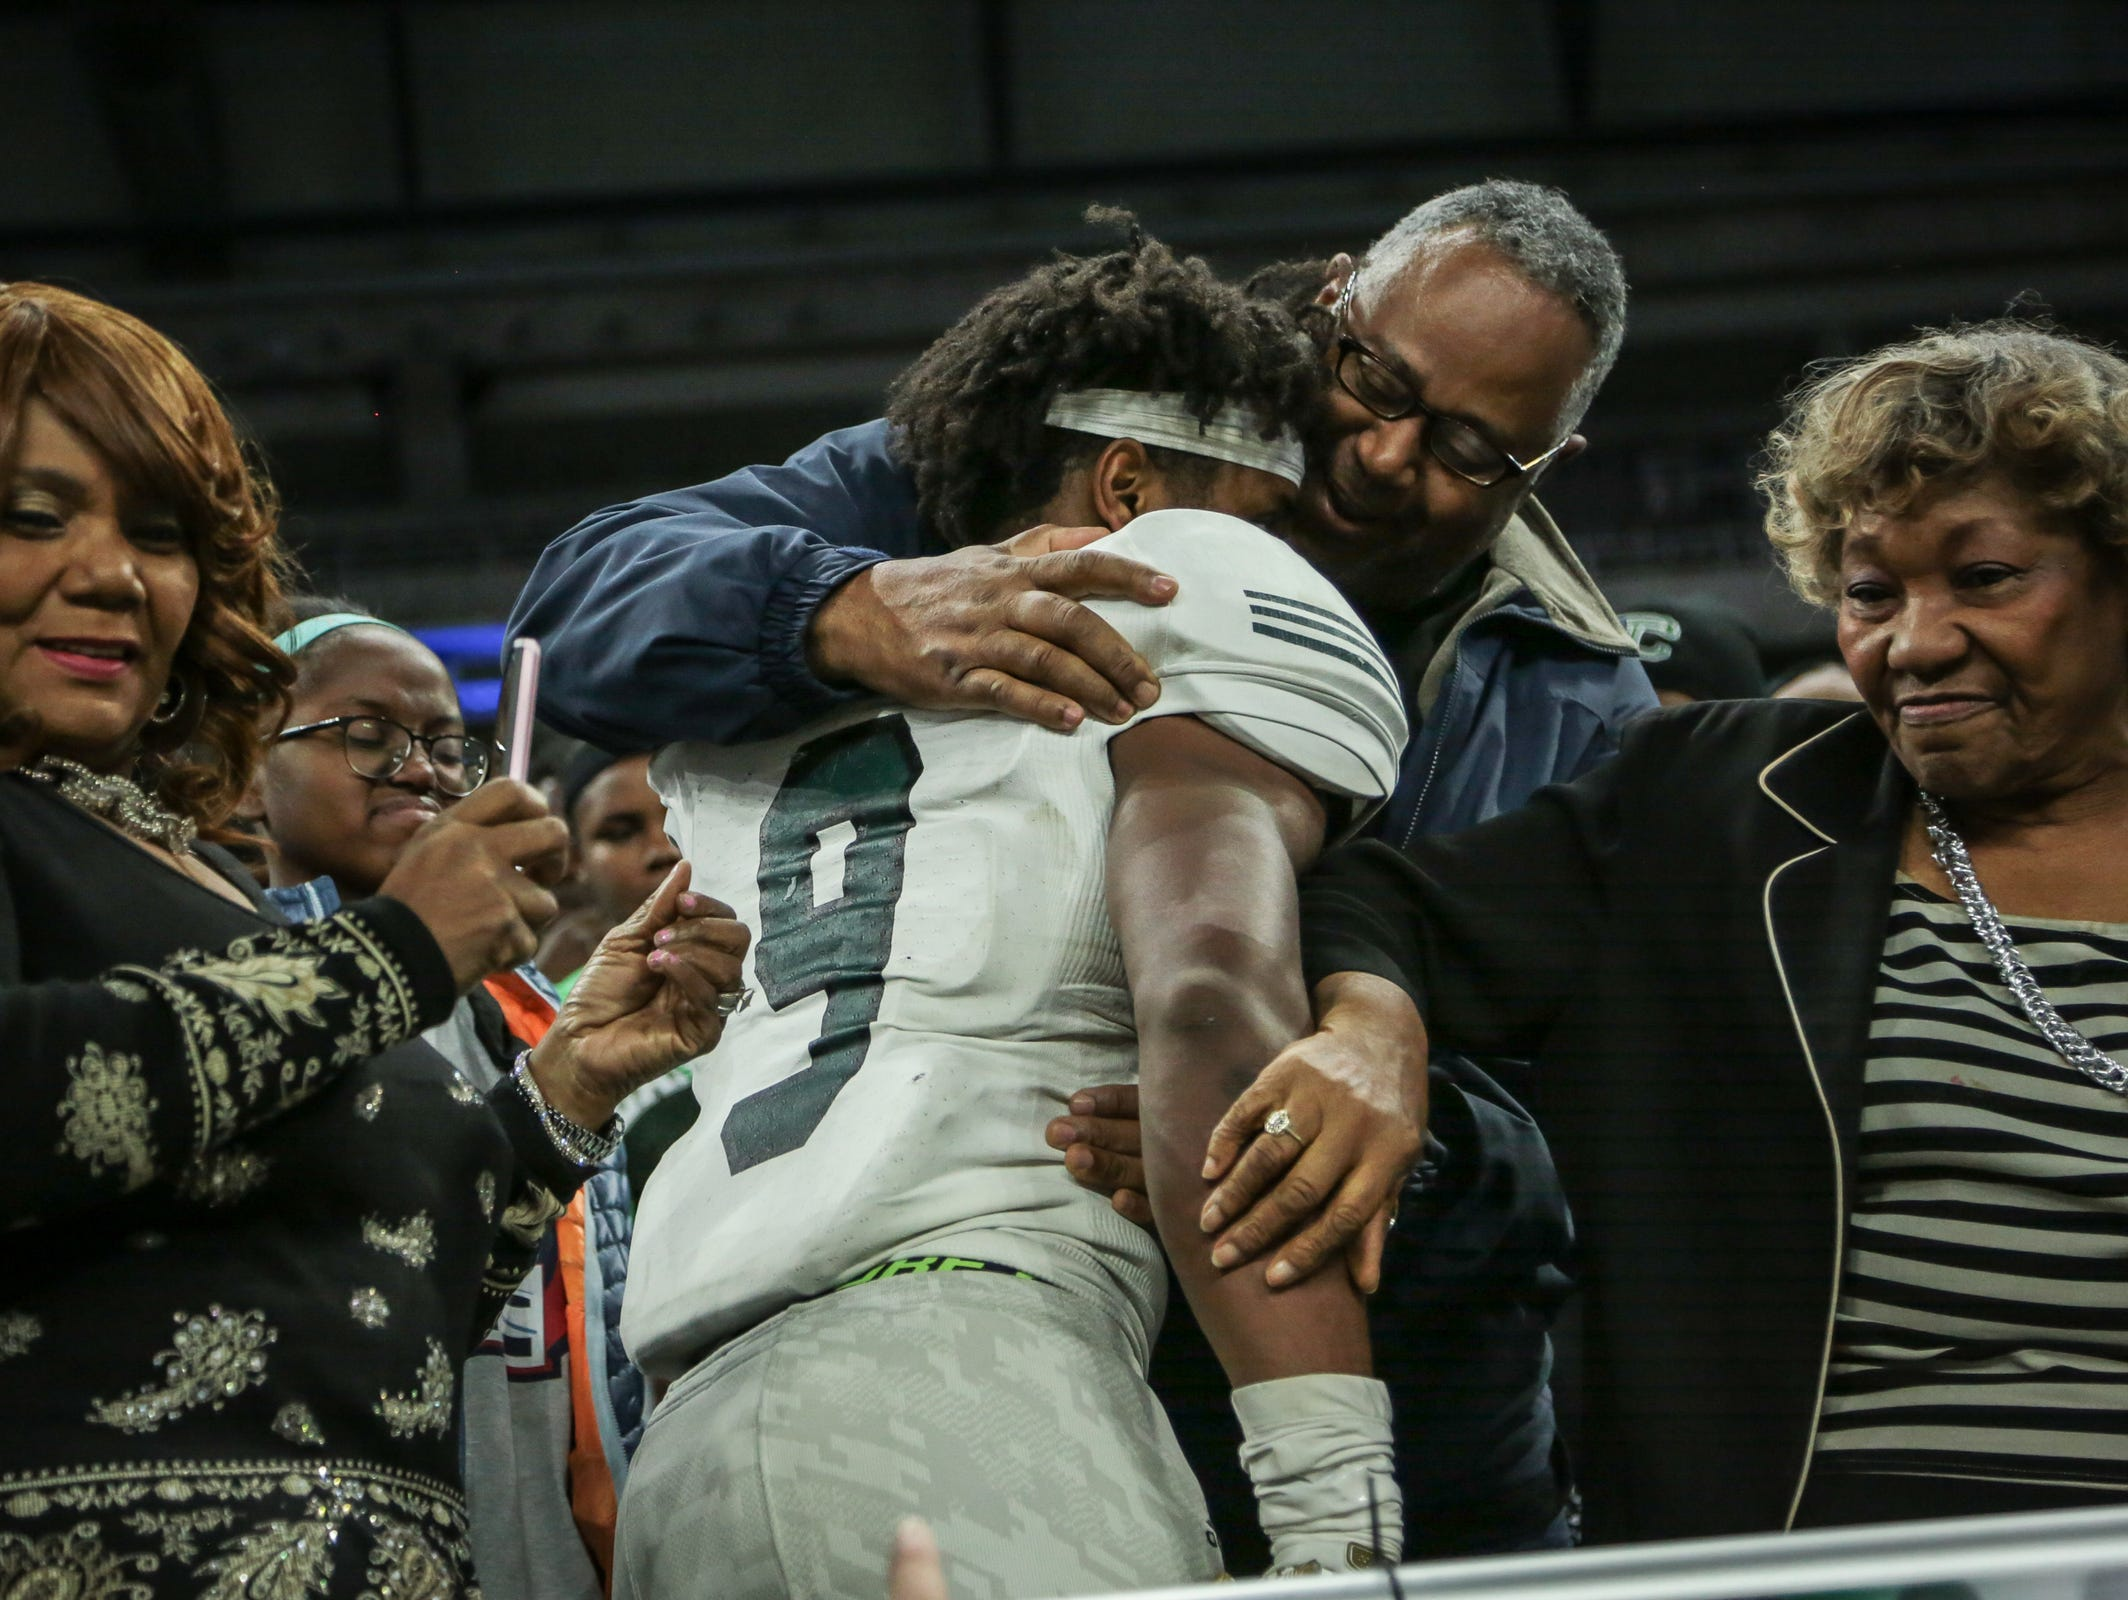 Detroit Cass Tech's Donovan Peoples-Jones (9) hugs family members after winning the title against Detroit Catholic Central during the Division 1 High School Championship game on Saturday November 26, 2016, at Ford Field in Detroit, MI.